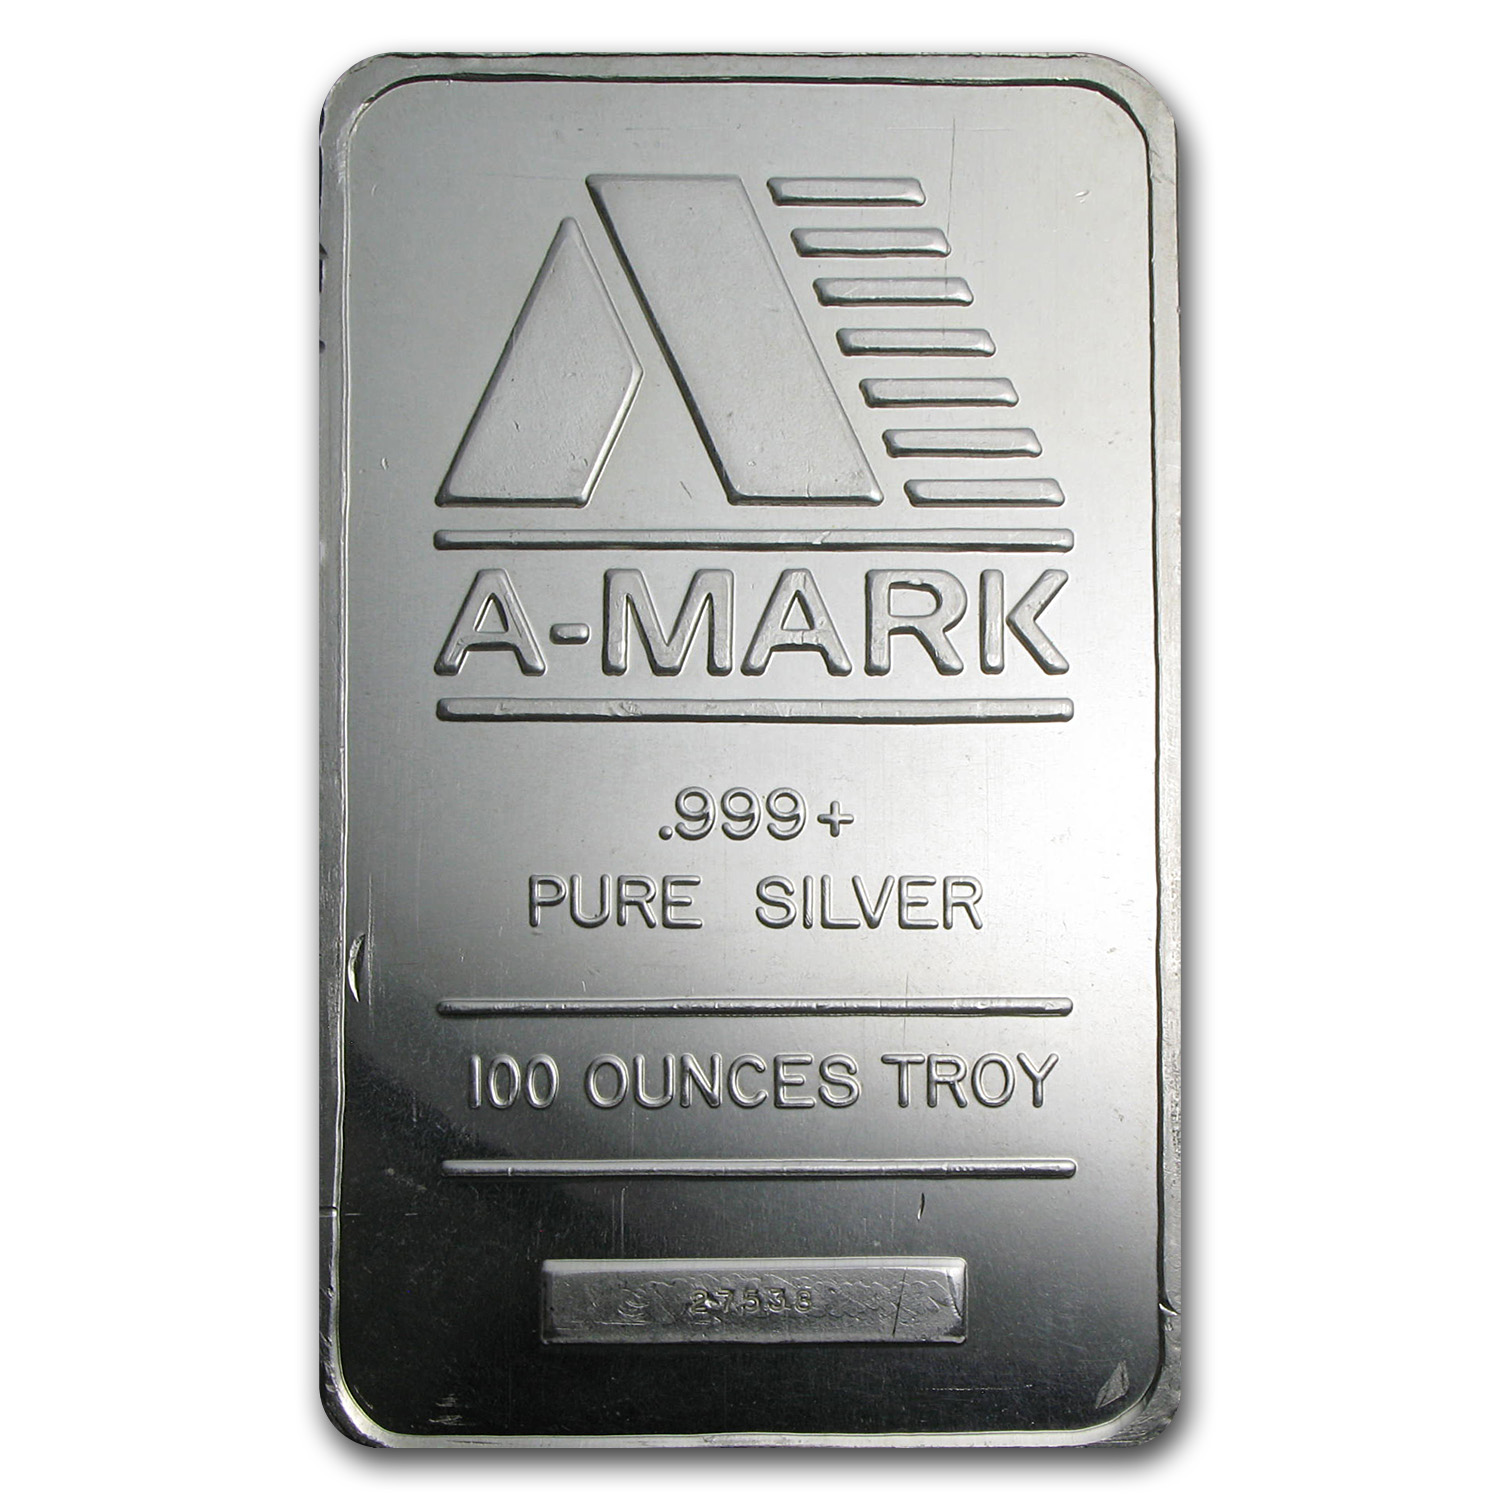 100 oz Silver Bars - A-Mark (Pressed)